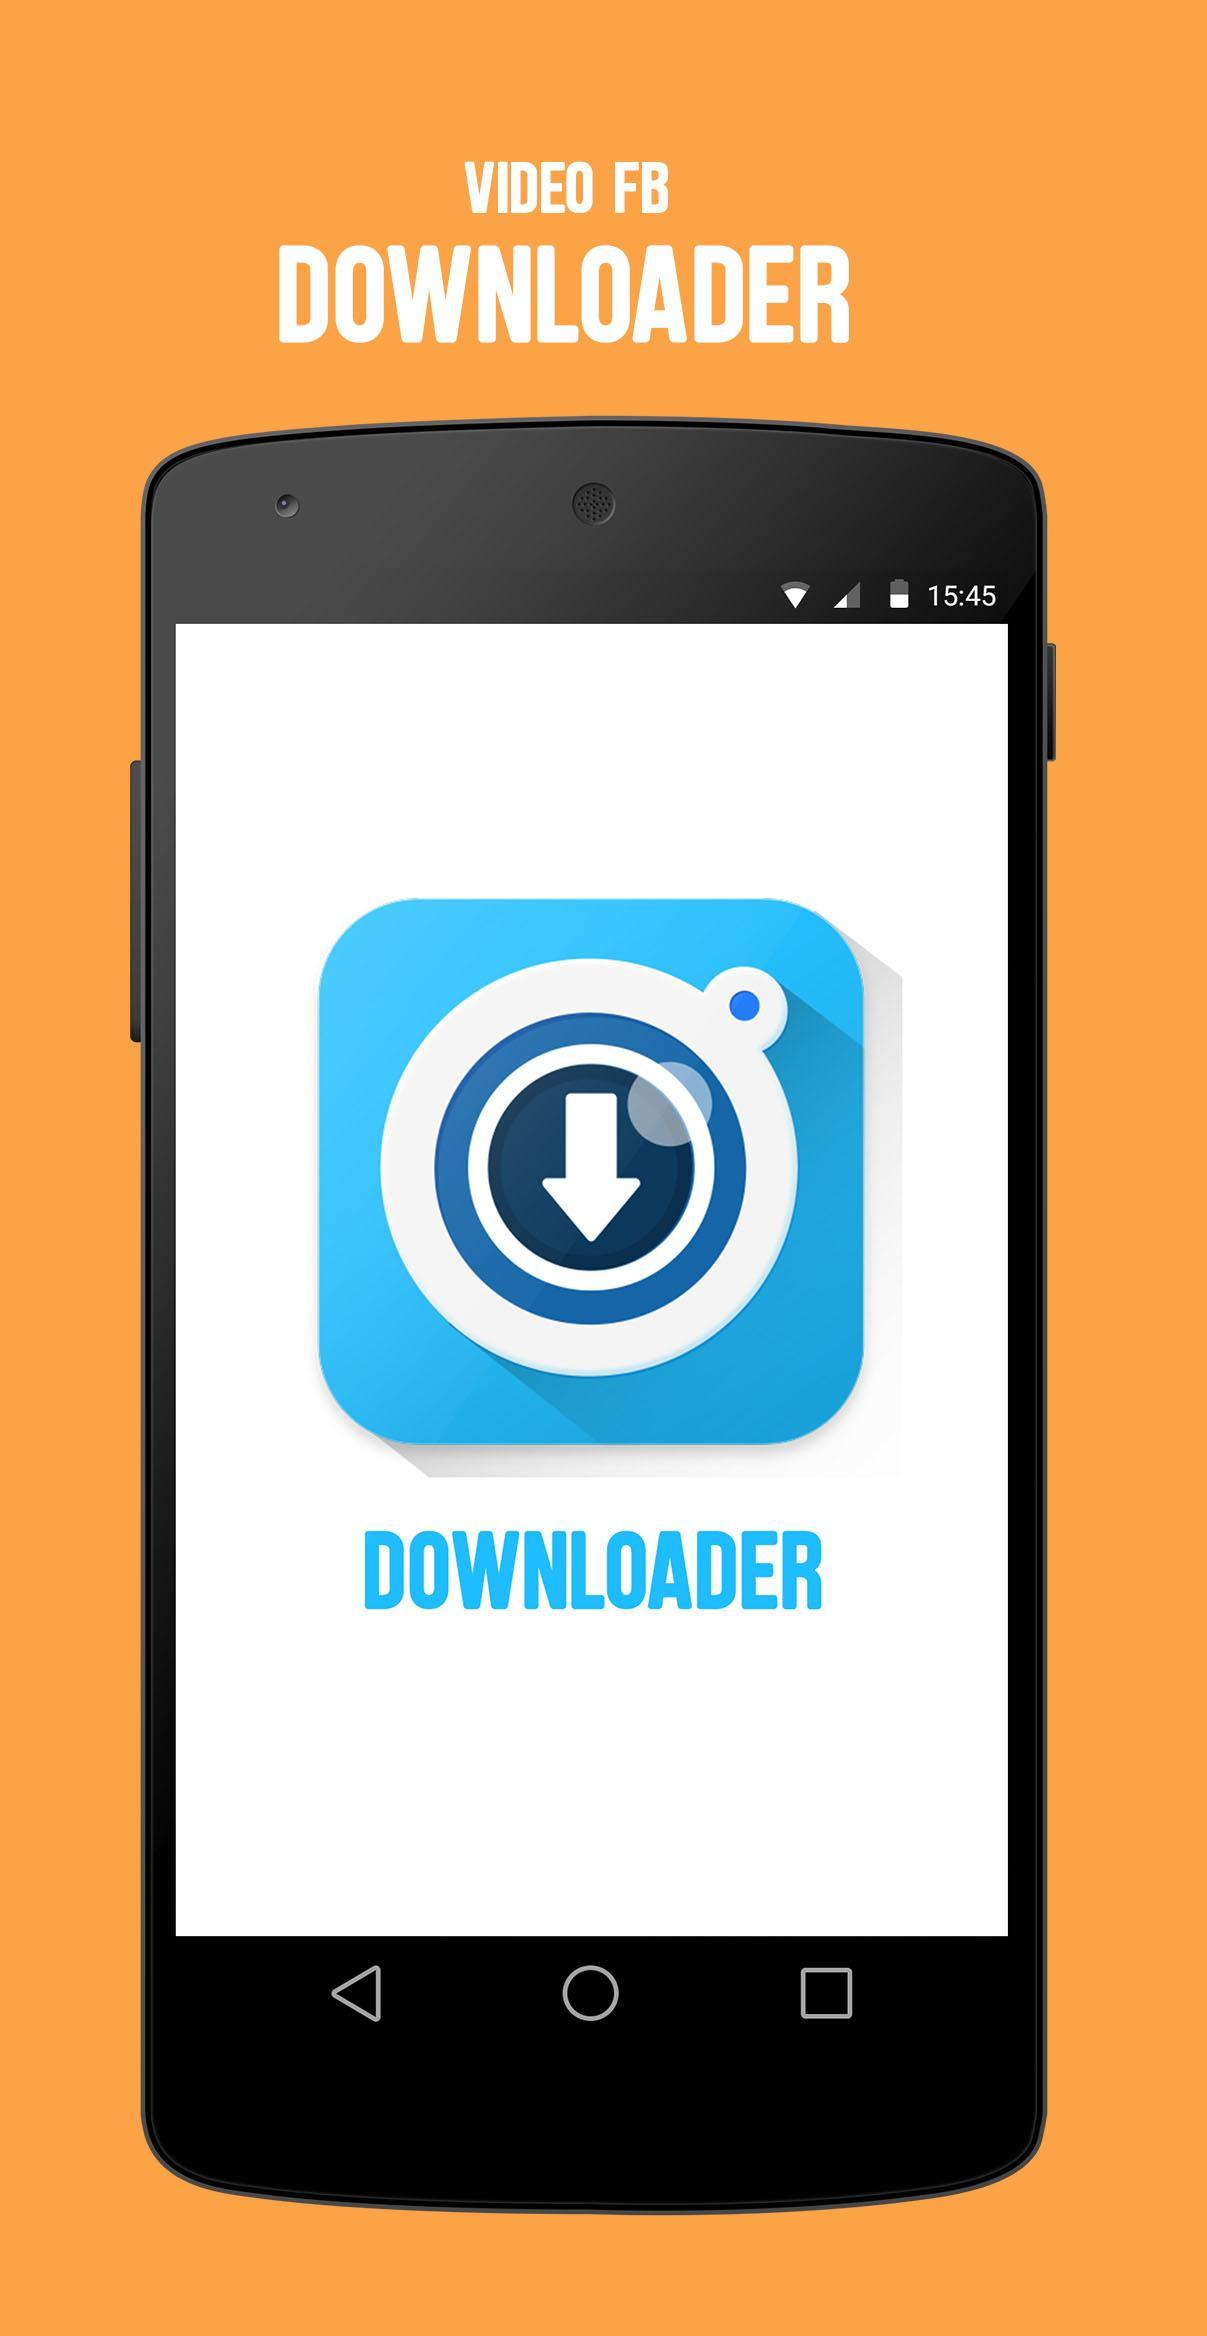 Save Video From Fb For Android Apk Download